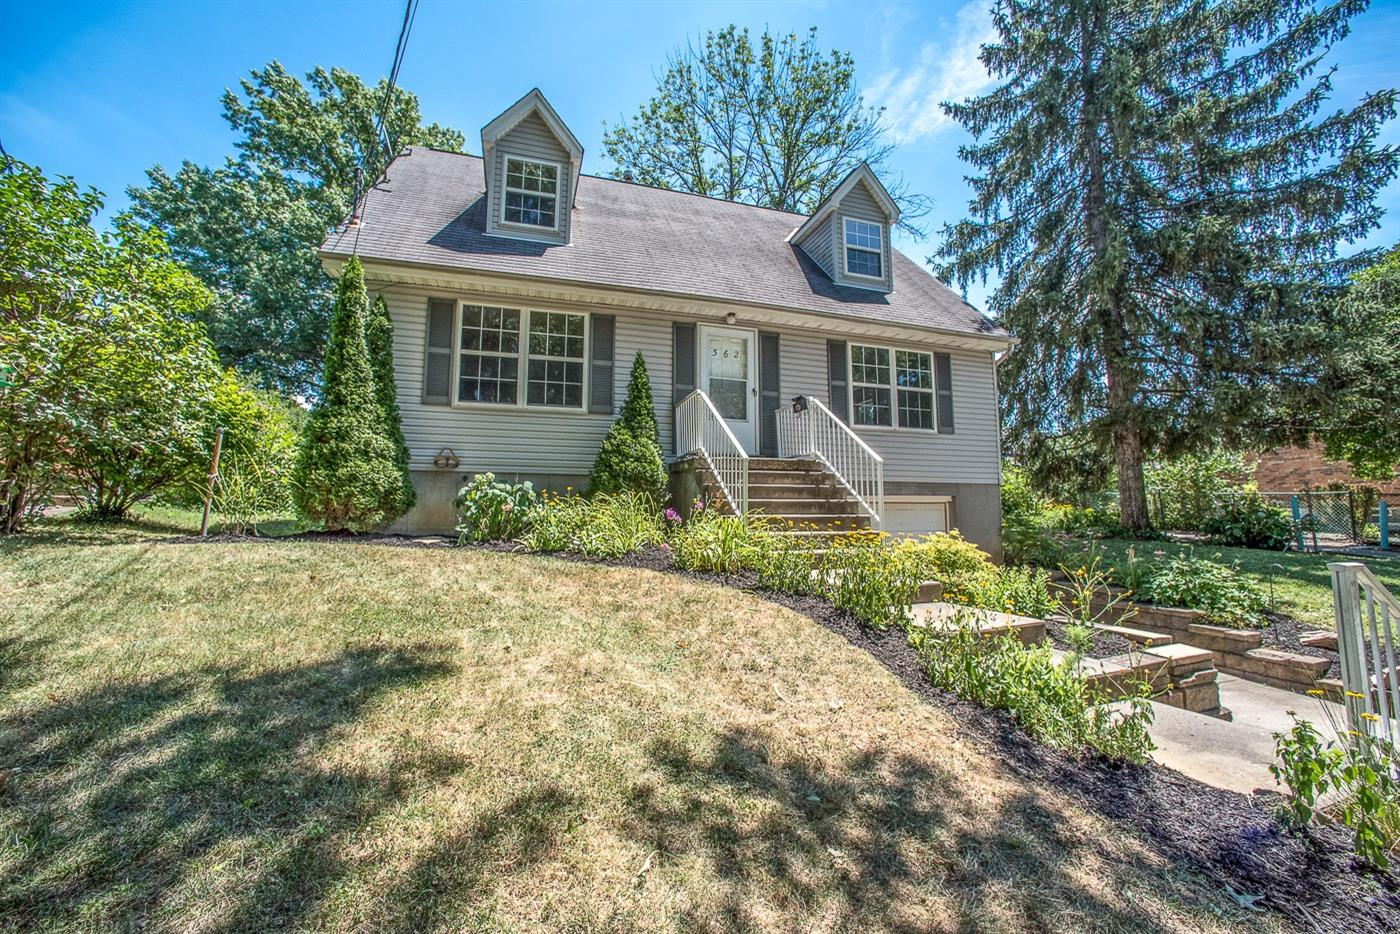 562 Covedale Ave Delhi Twp., OH